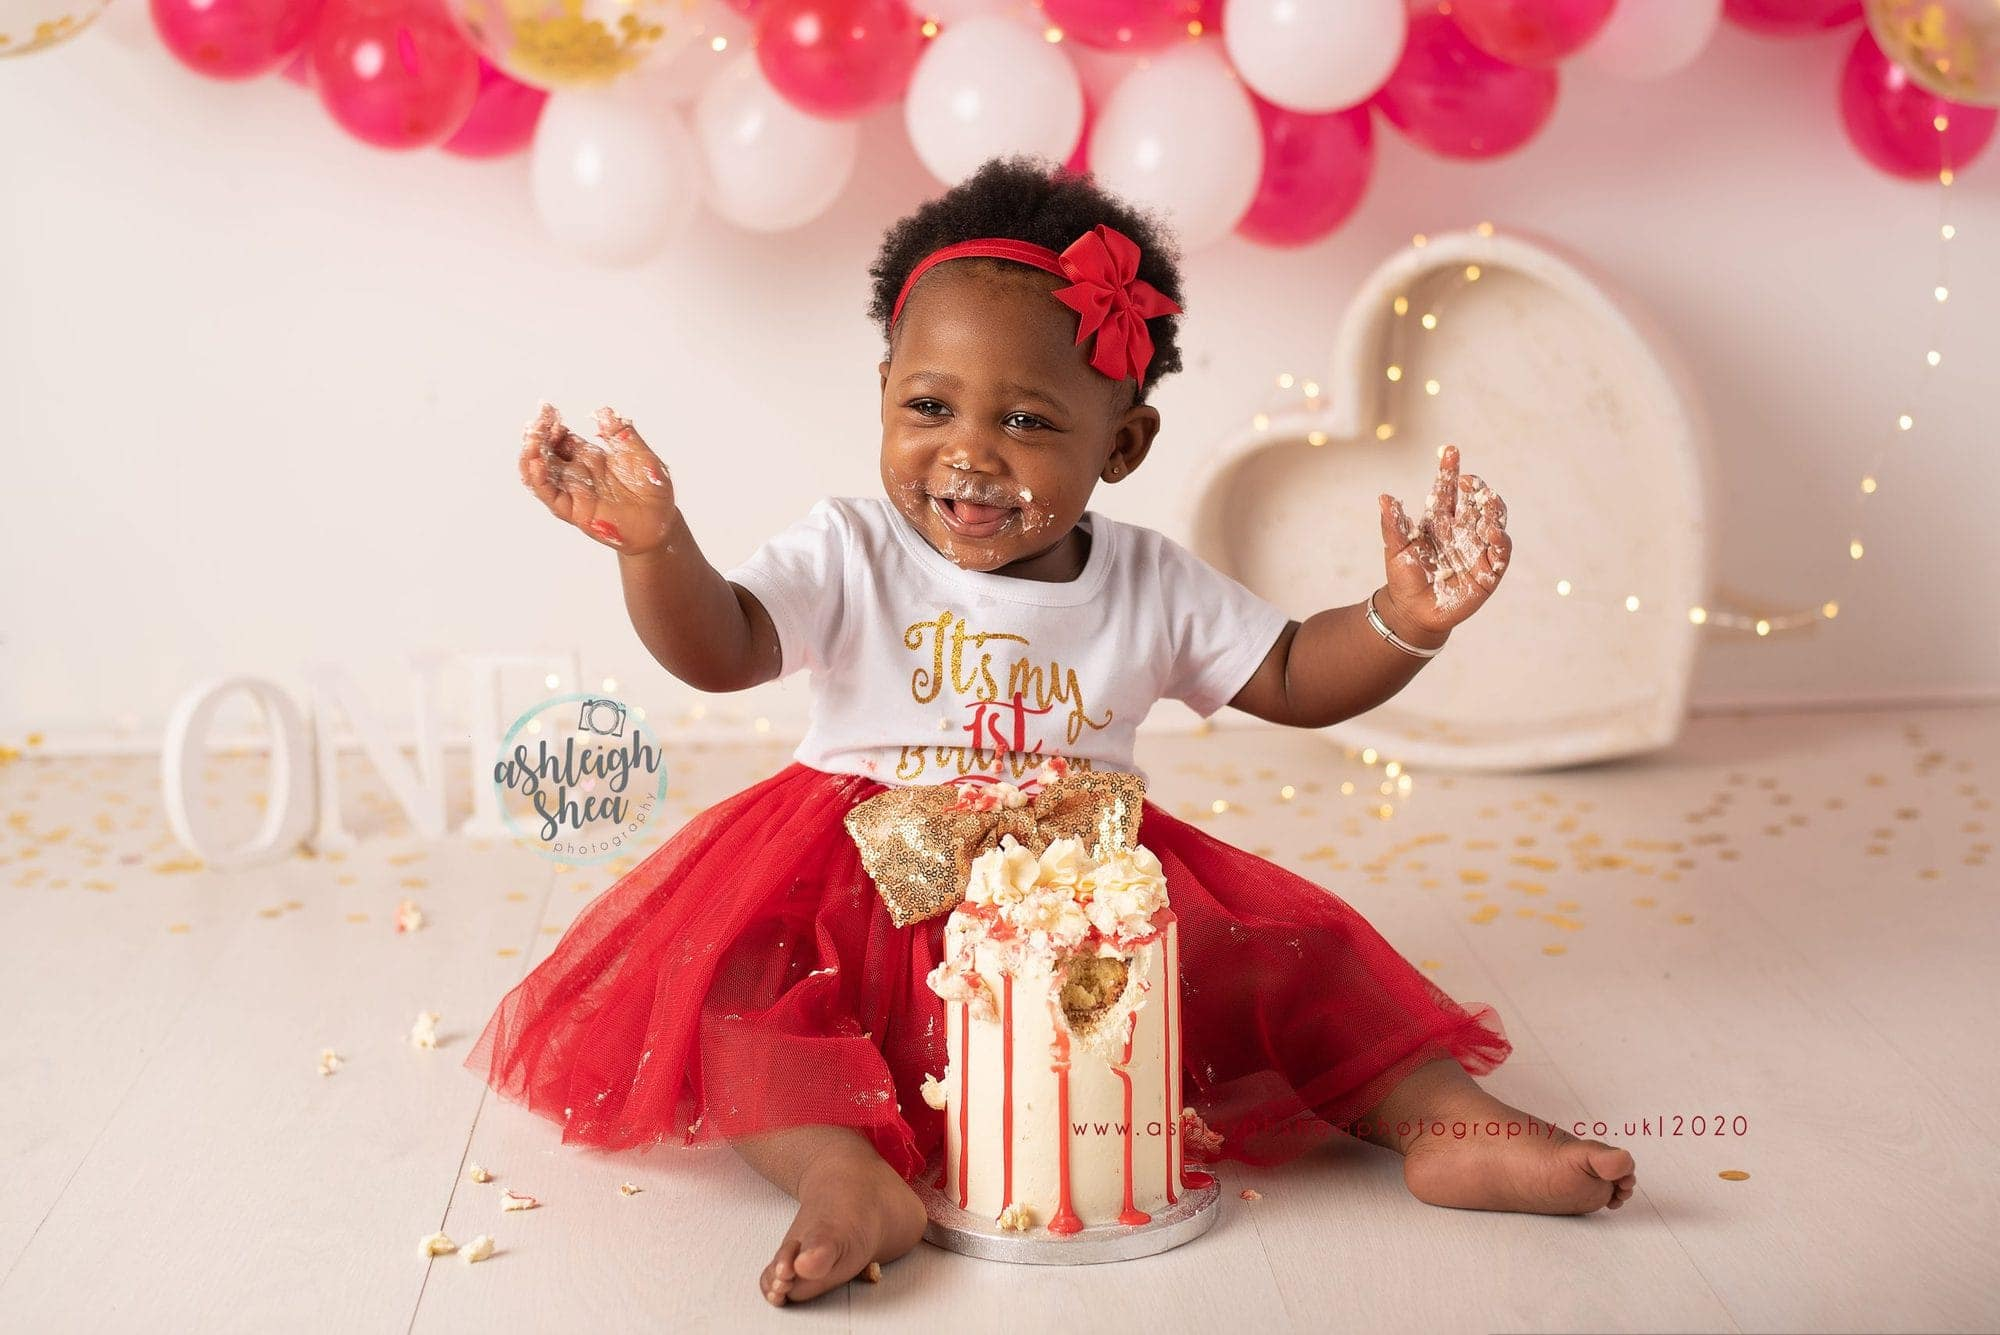 First Birthday baby cake Smash photography session by Ashleigh Shea photographyloon Garland, Ashleigh Shea Photography, Bromley, London